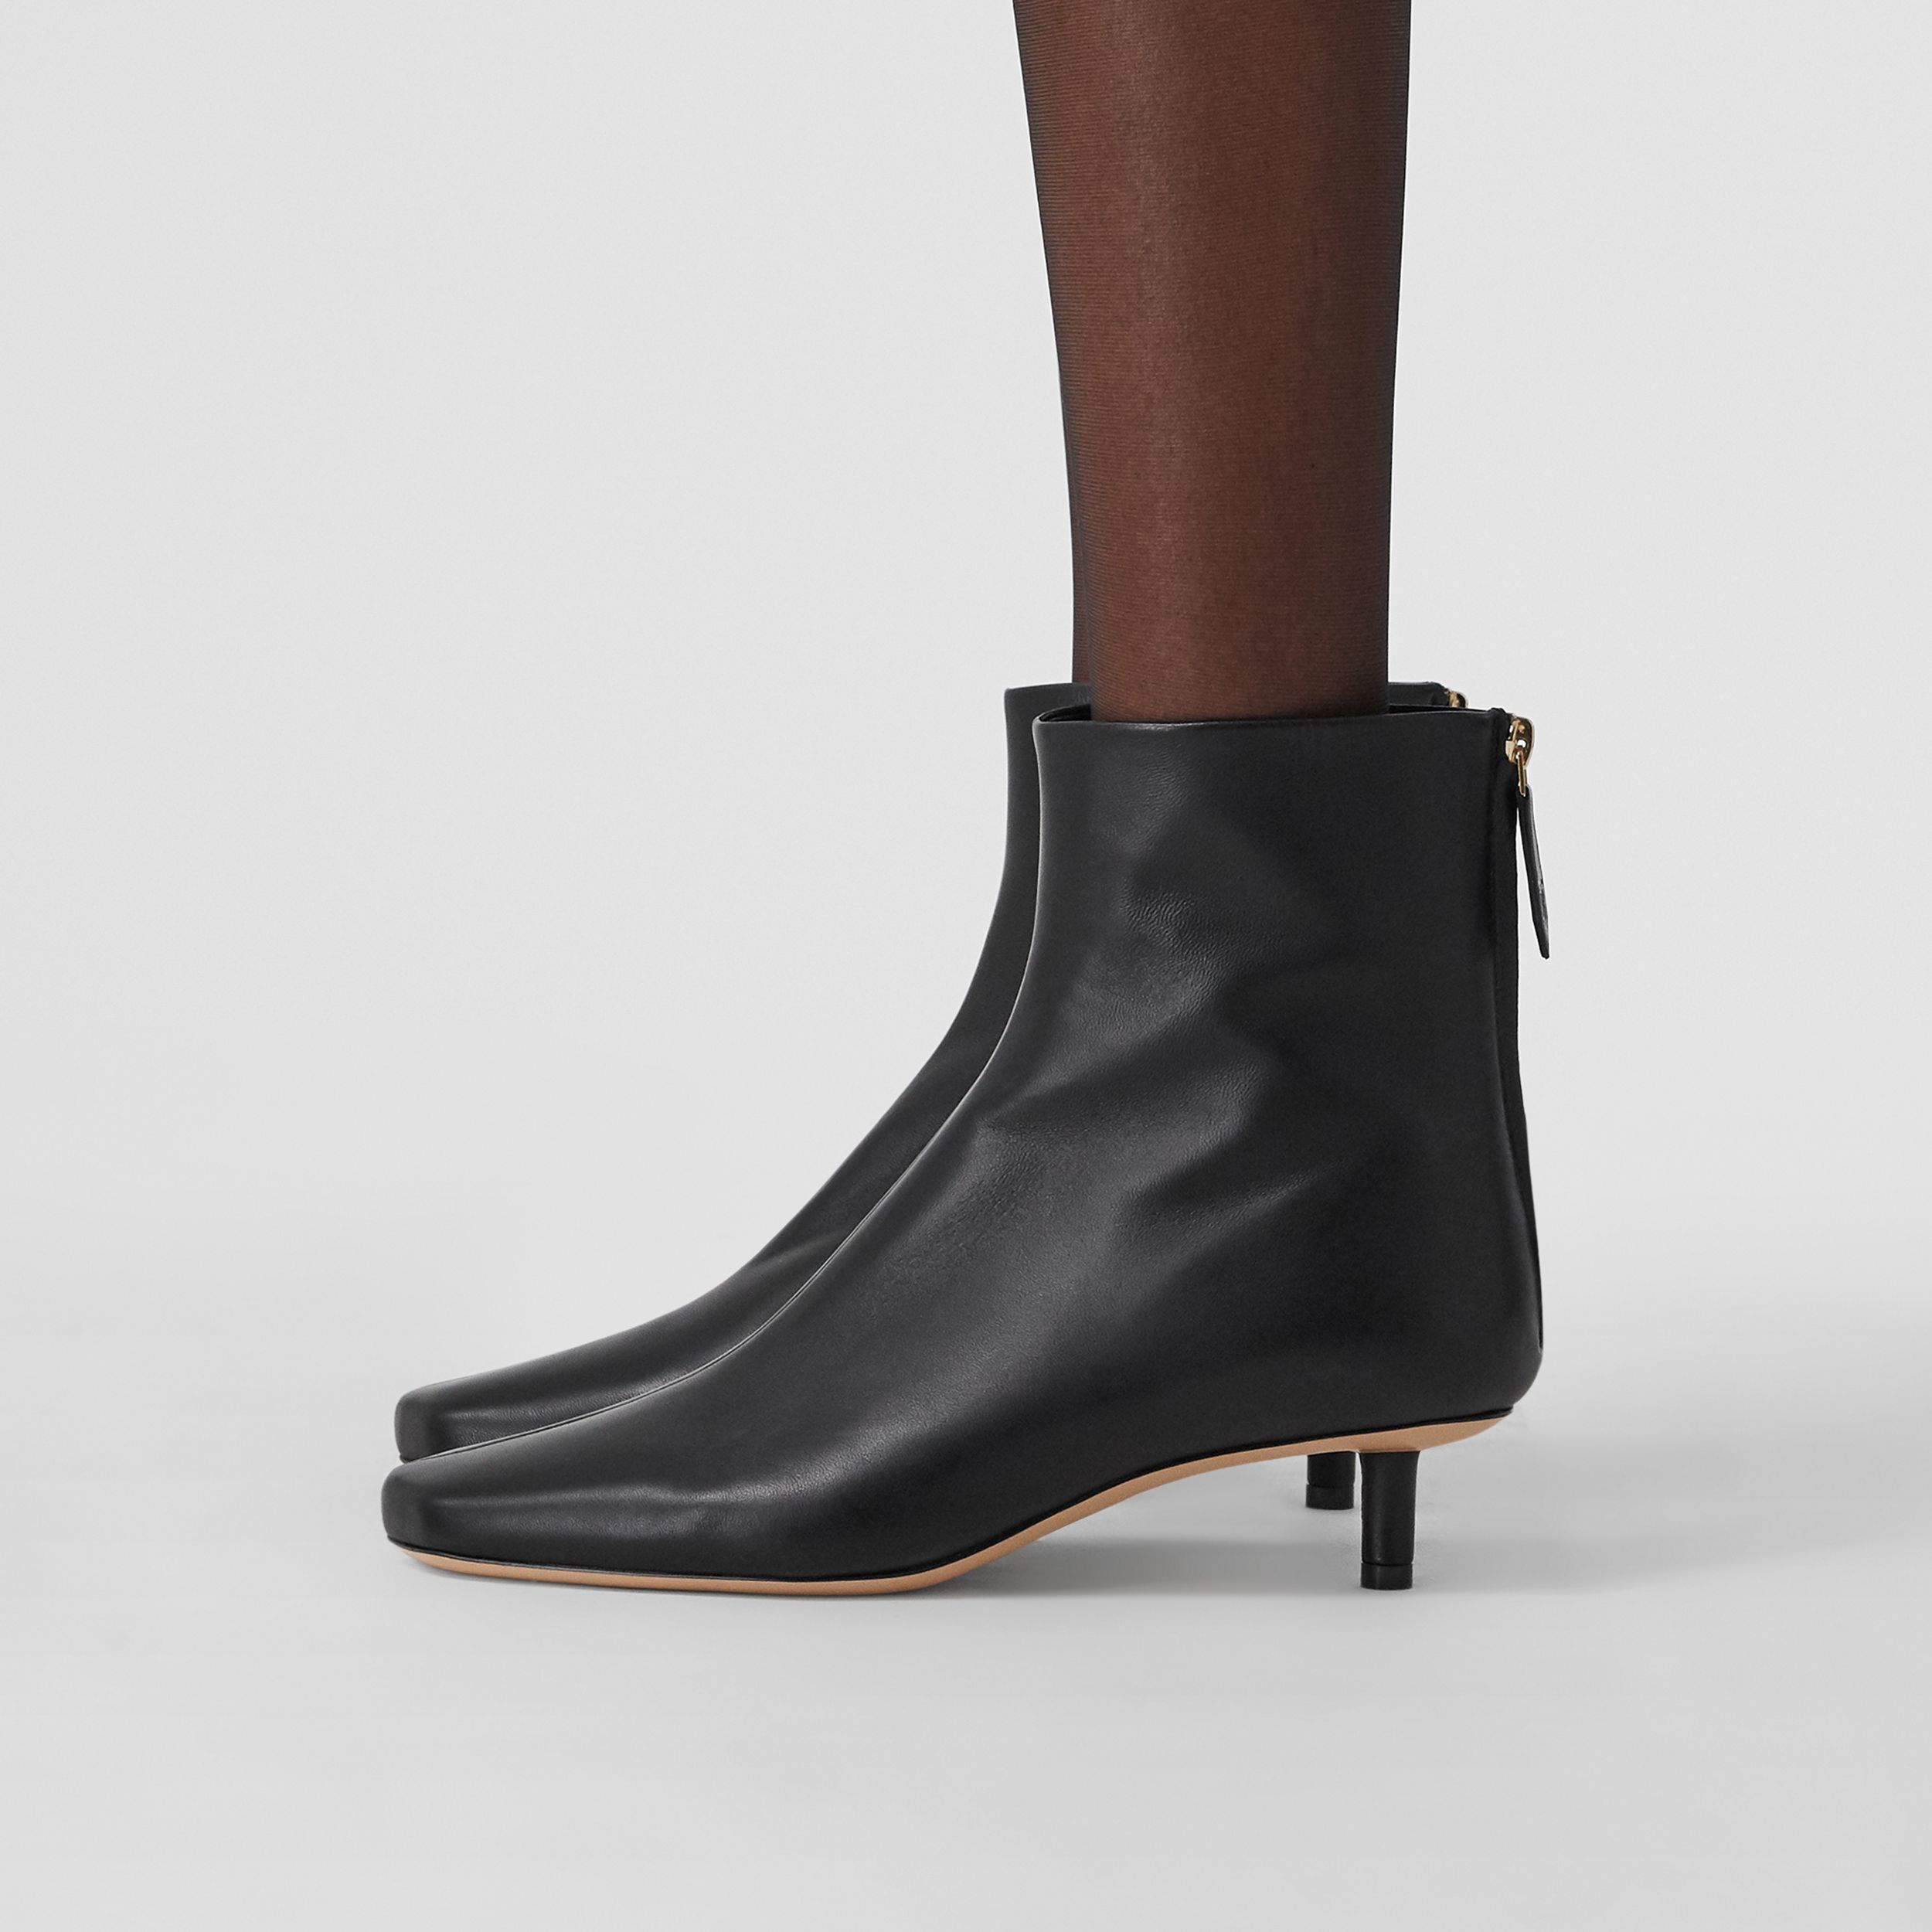 Lambskin Sculptural Kitten-heel Ankle Boots in Black - Women | Burberry - 3